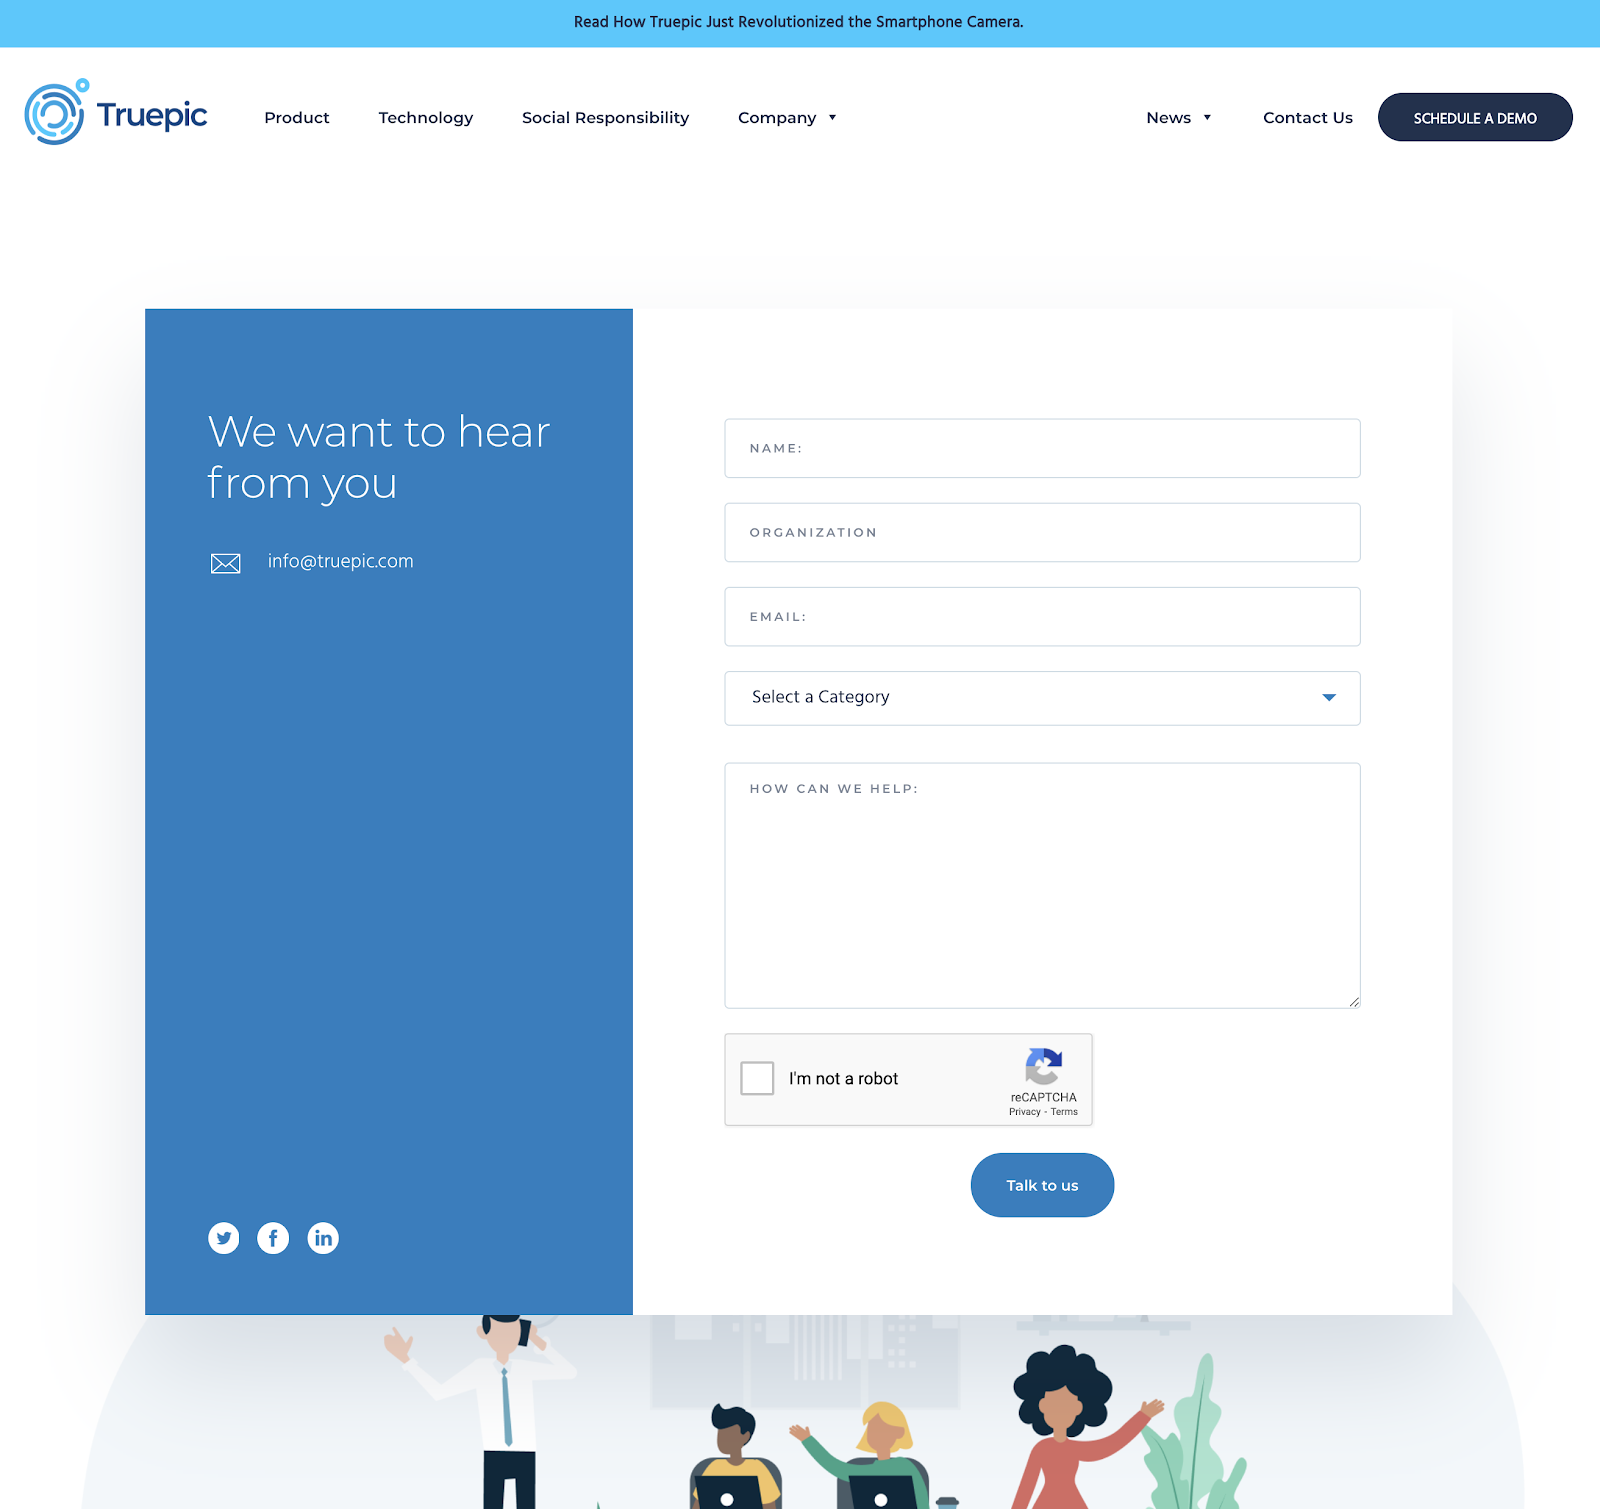 Truepic contact page